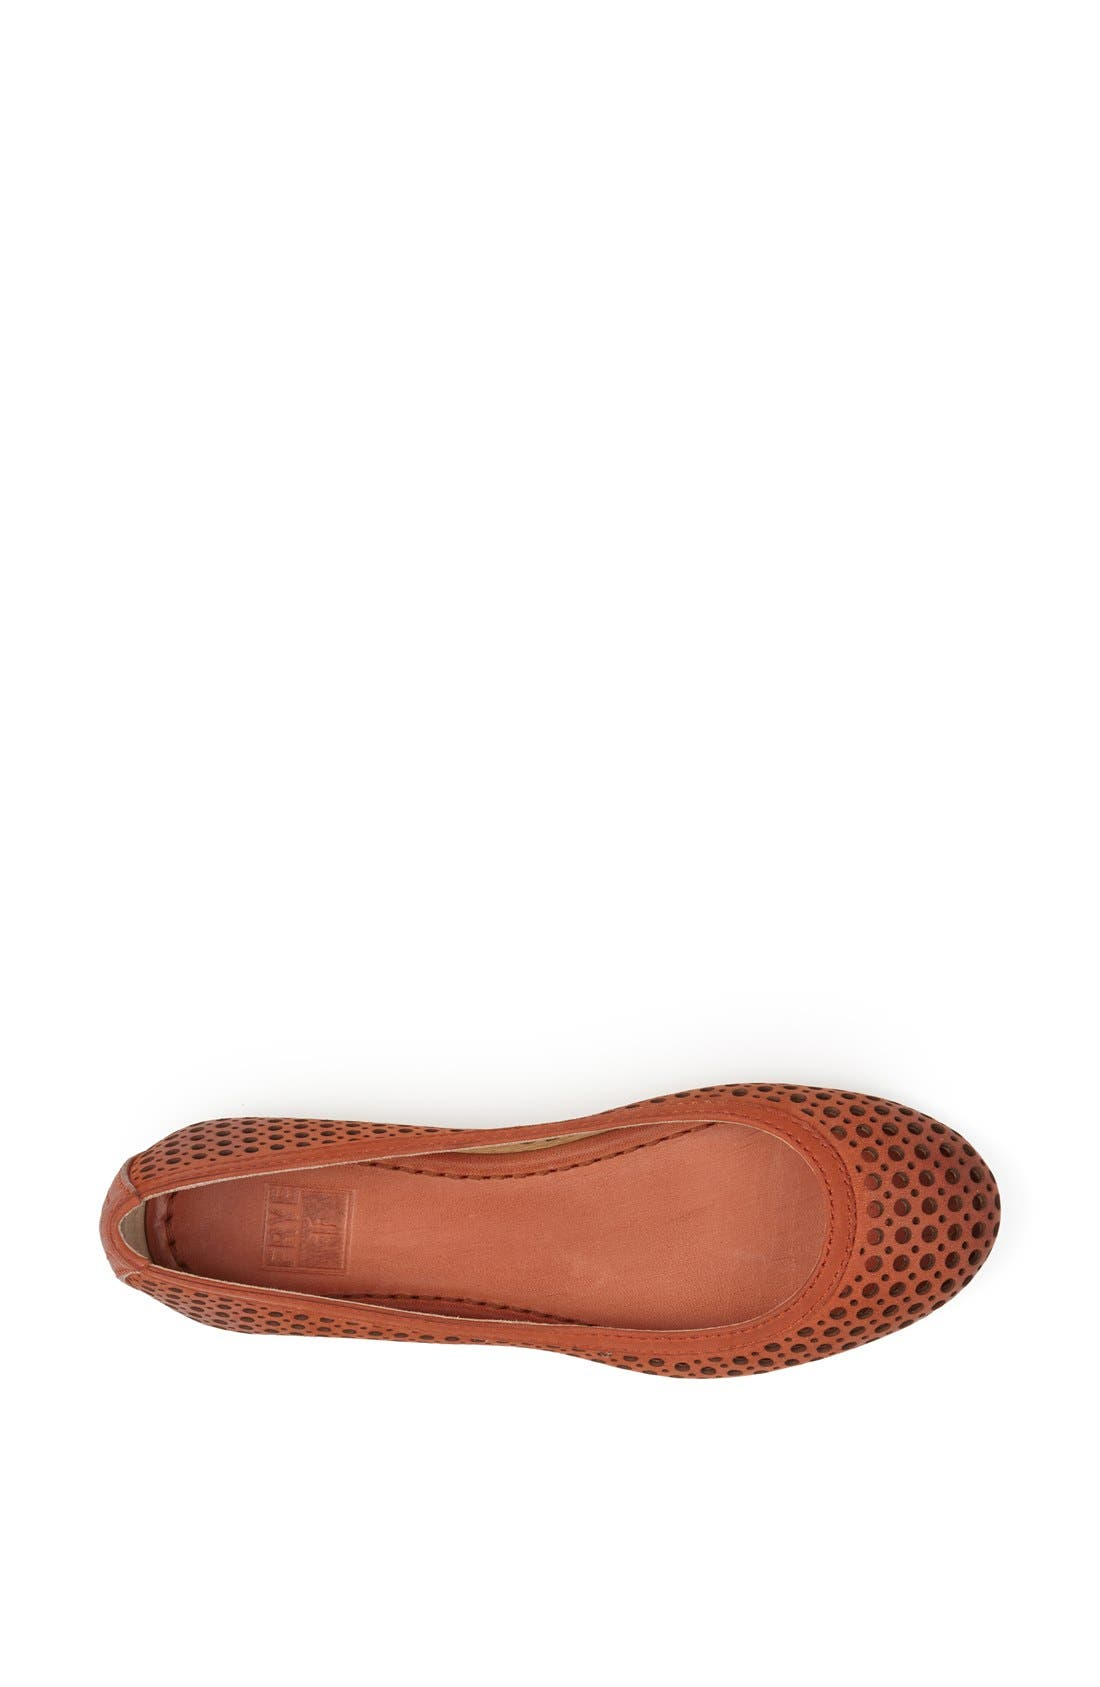 Alternate Image 3  - Frye 'Carson' Perforated Leather Ballet Flat